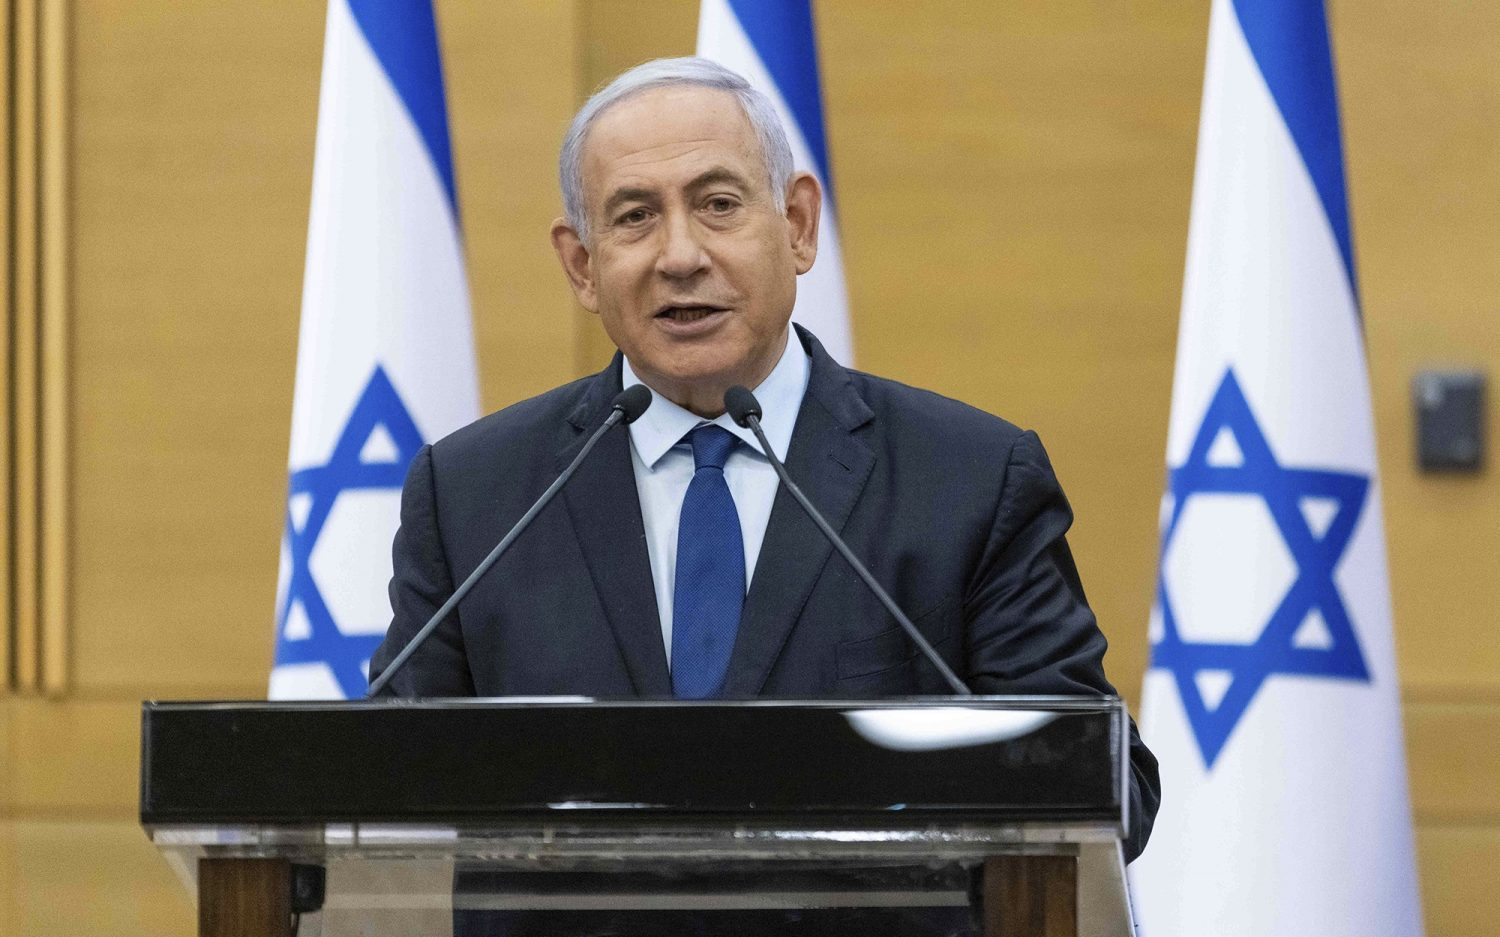 Netanyahu on his way out after a dozen years